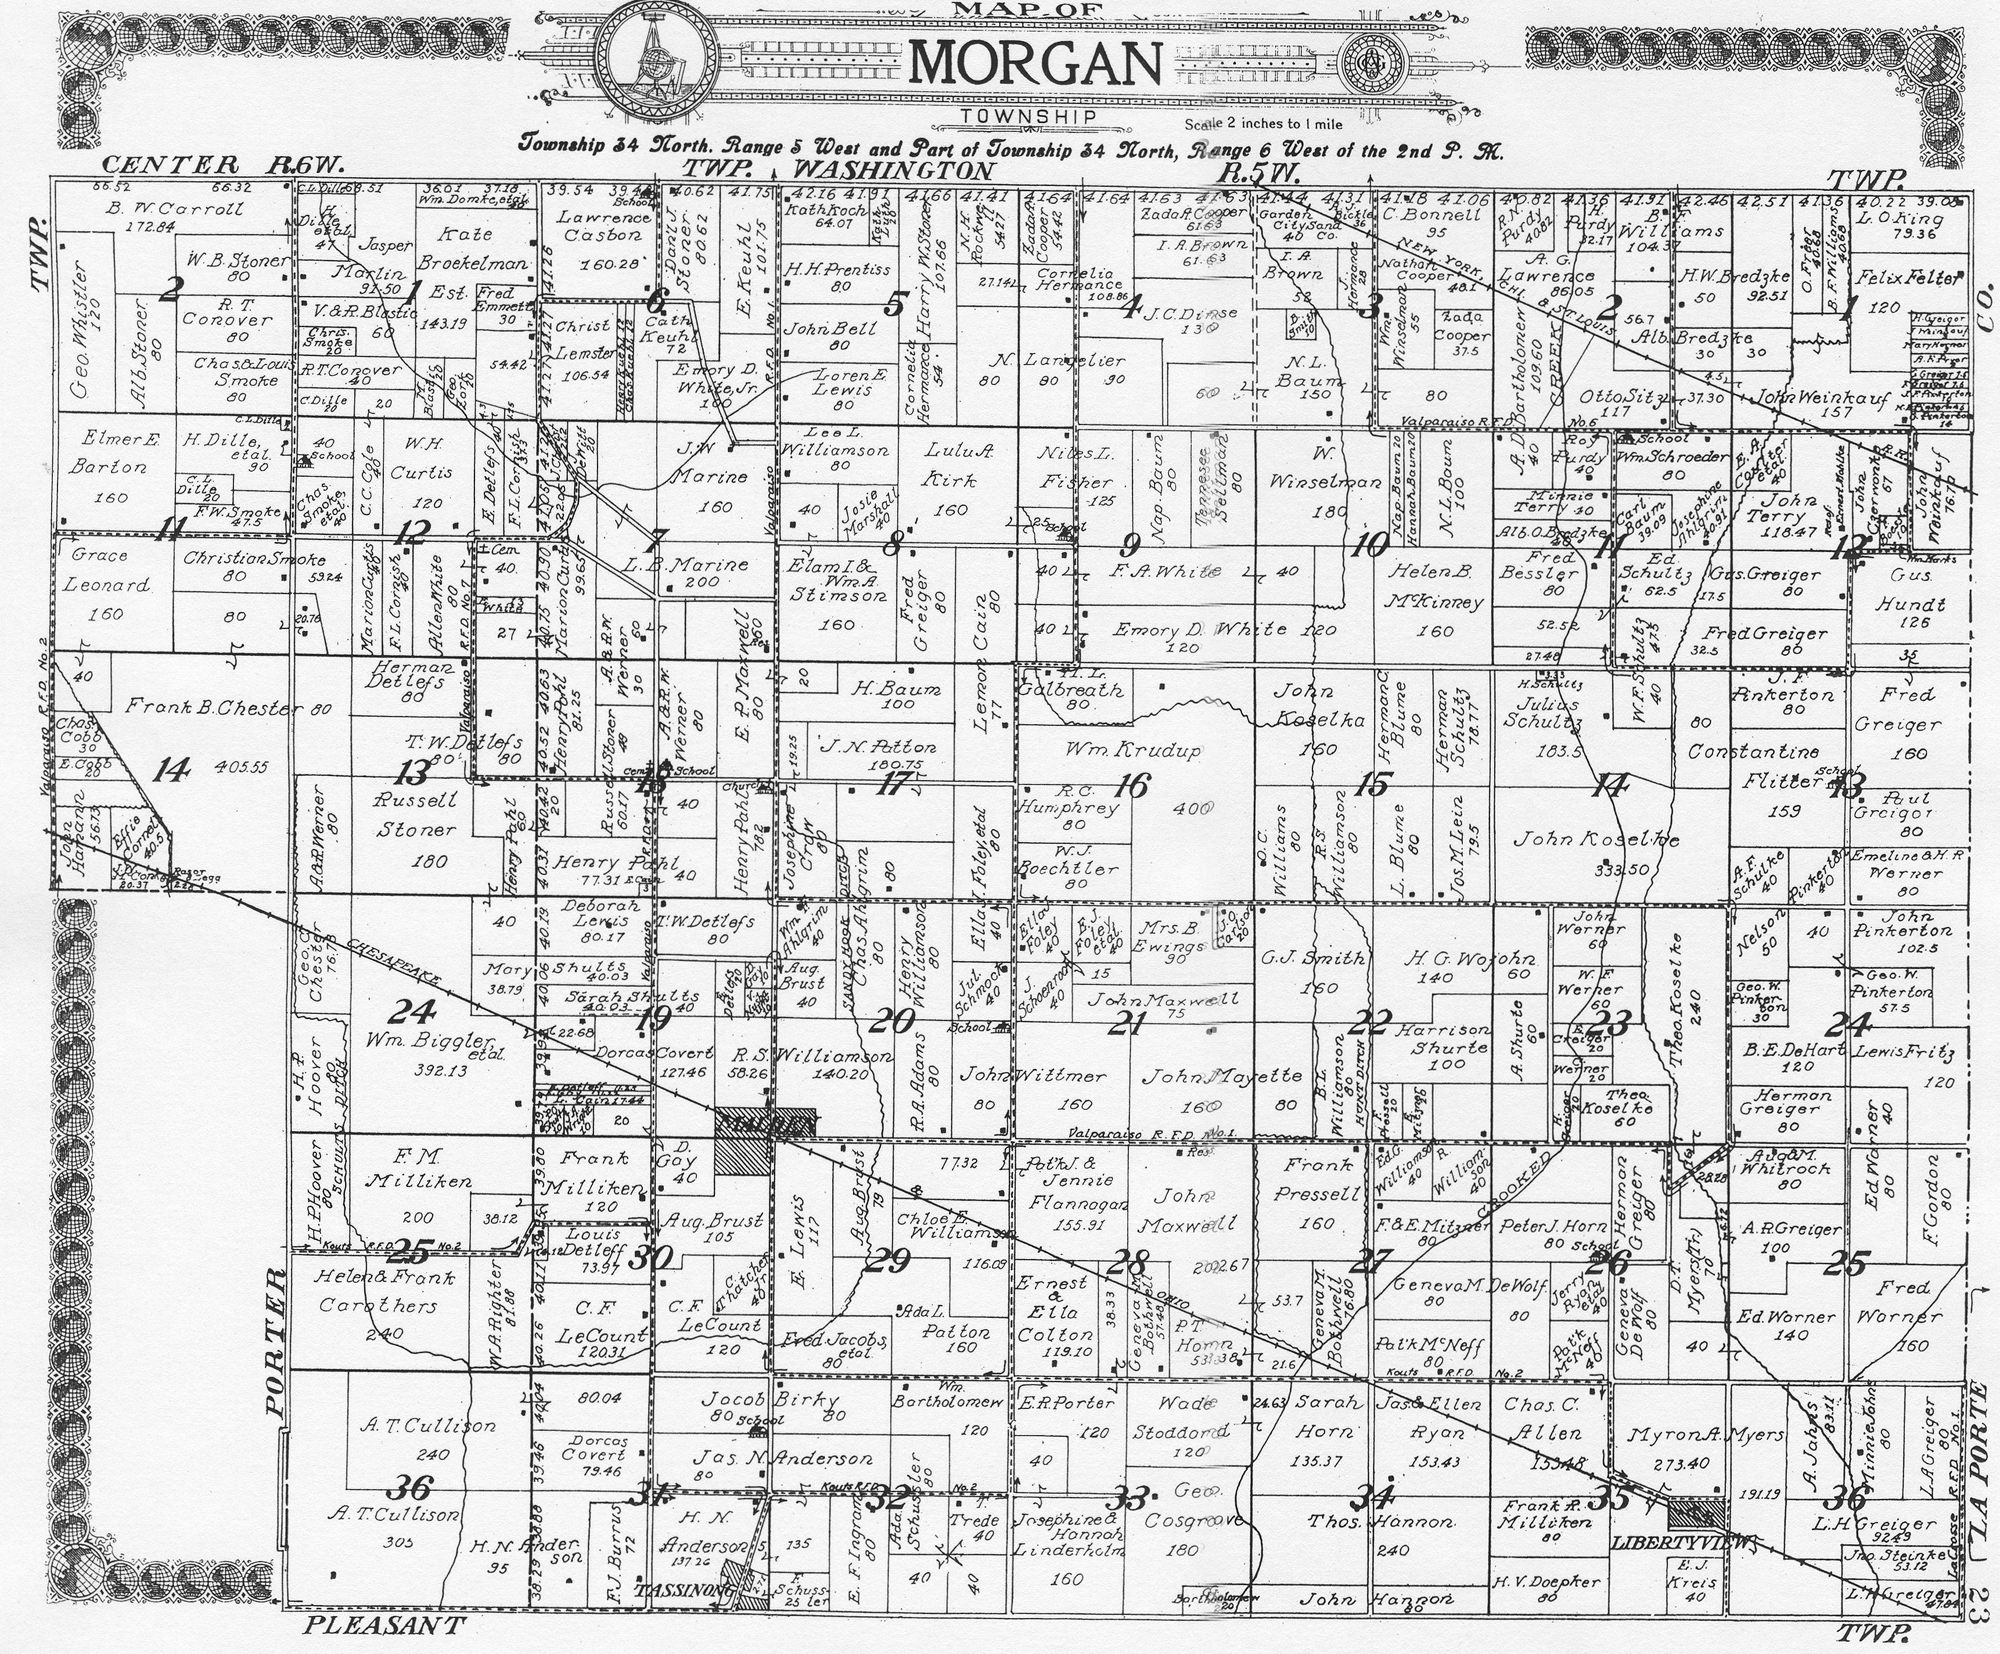 Porter County Indiana Genweb Morgan Township Maps